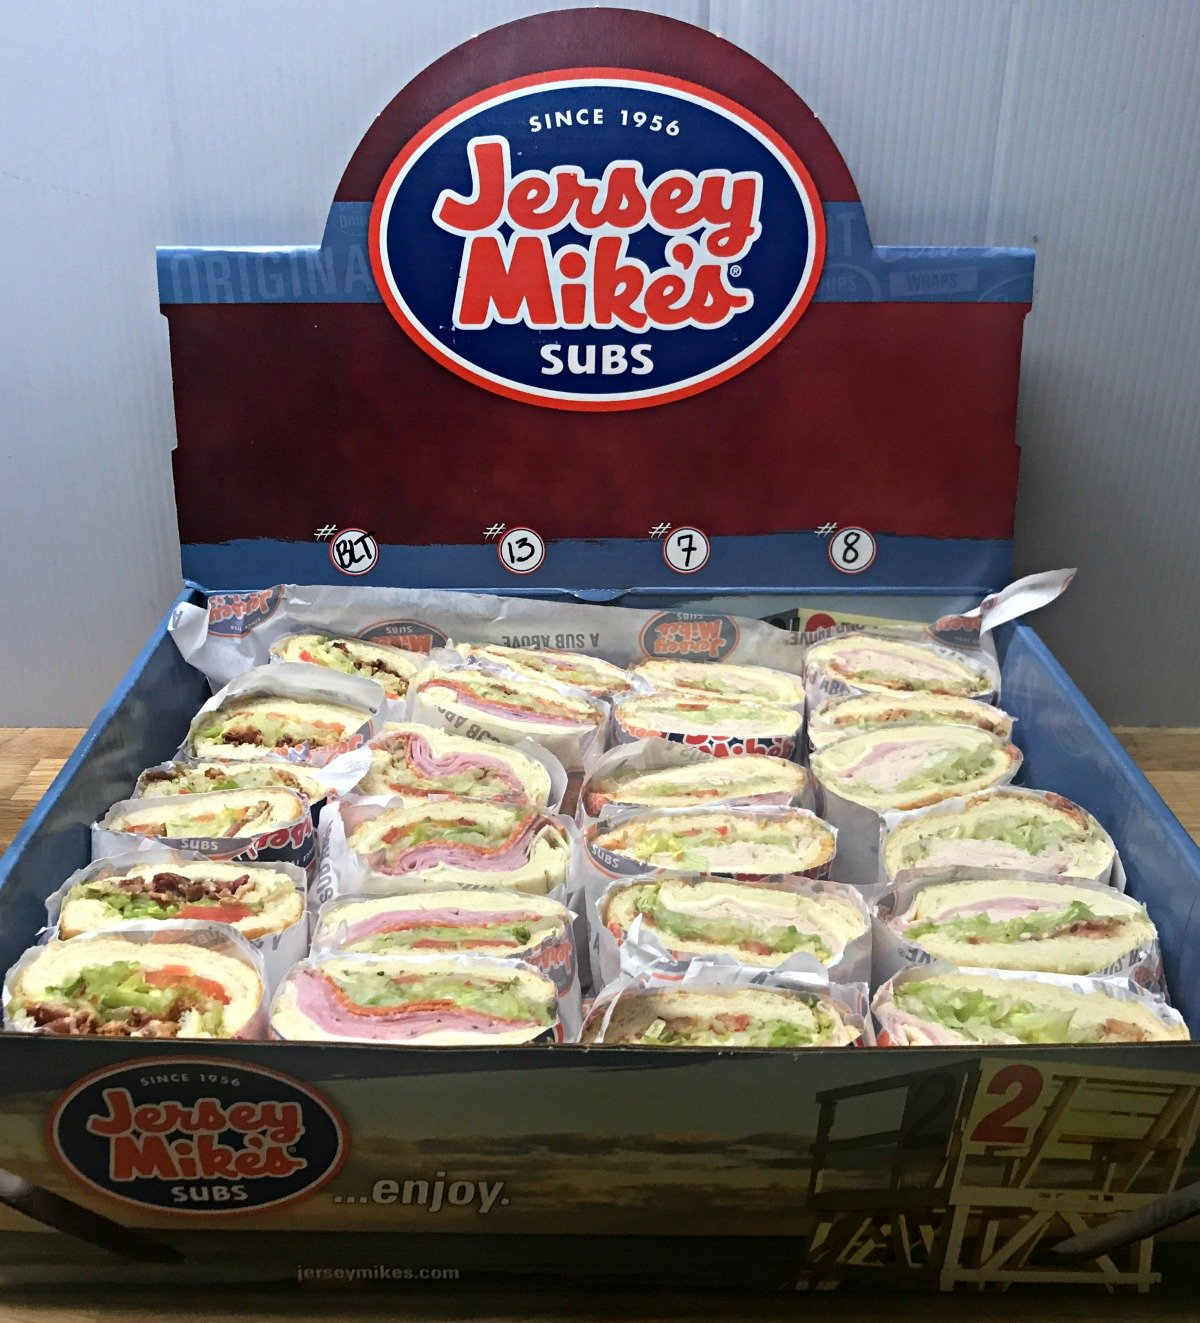 jersey mikes subs